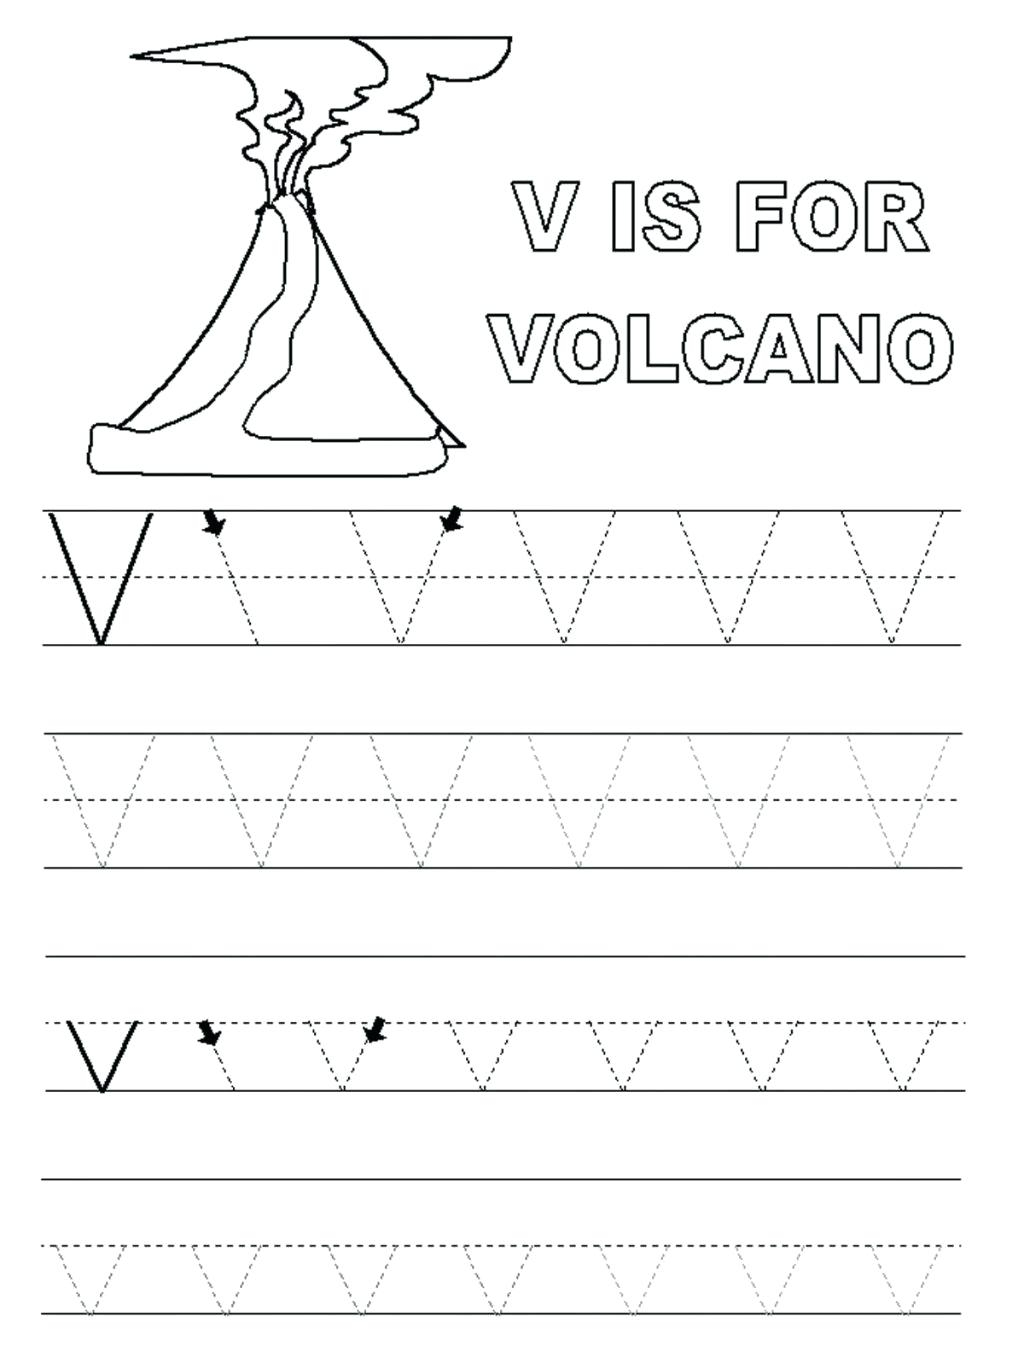 Preschool Worksheets With The Letter V - Clover Hatunisi pertaining to Letter V Tracing Sheet